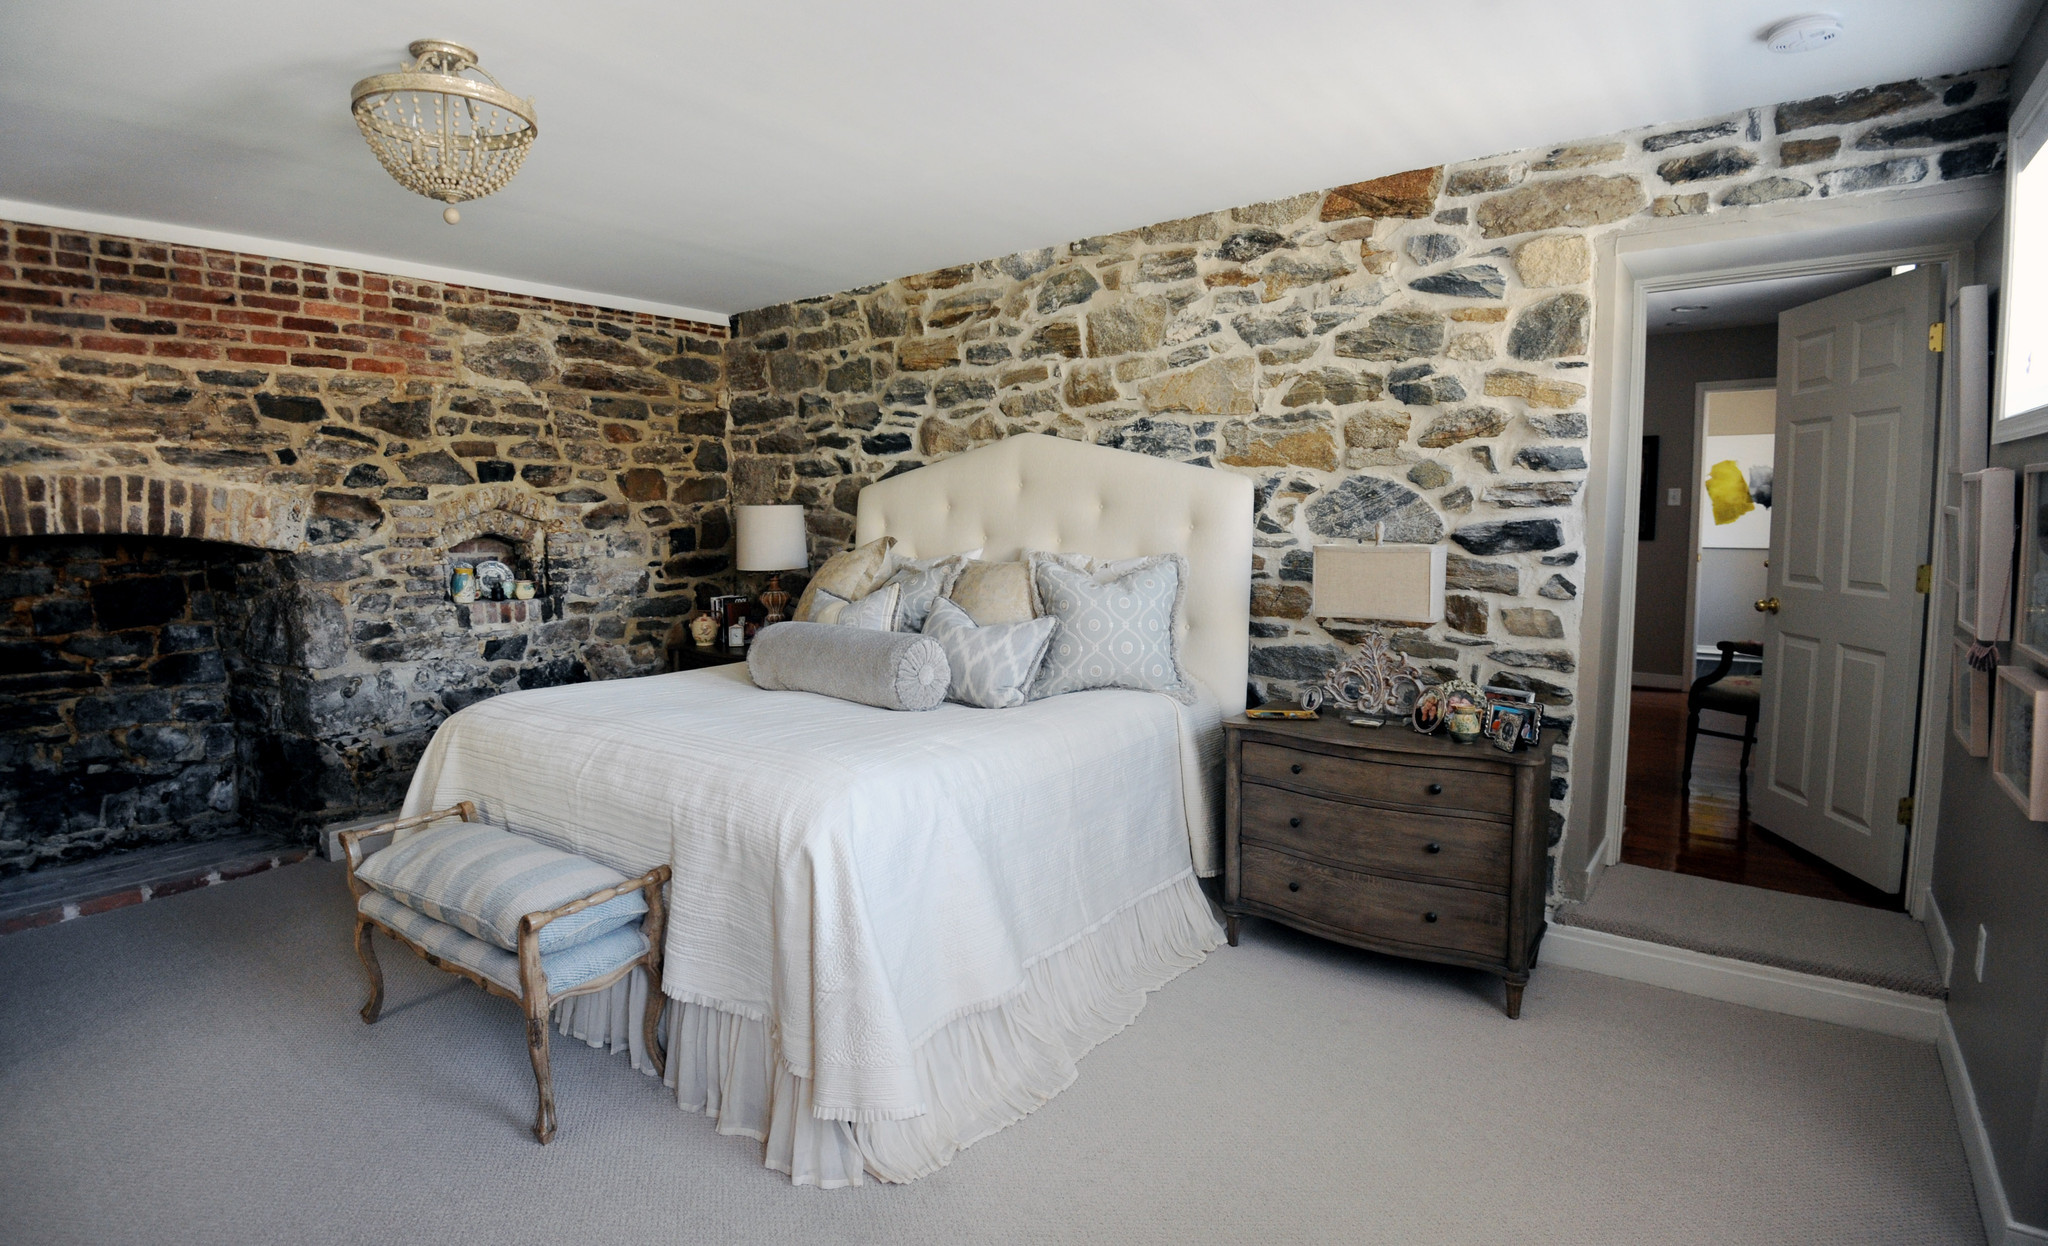 73 mg interior design baltimore in this designers home high style doesnt require huge. Black Bedroom Furniture Sets. Home Design Ideas